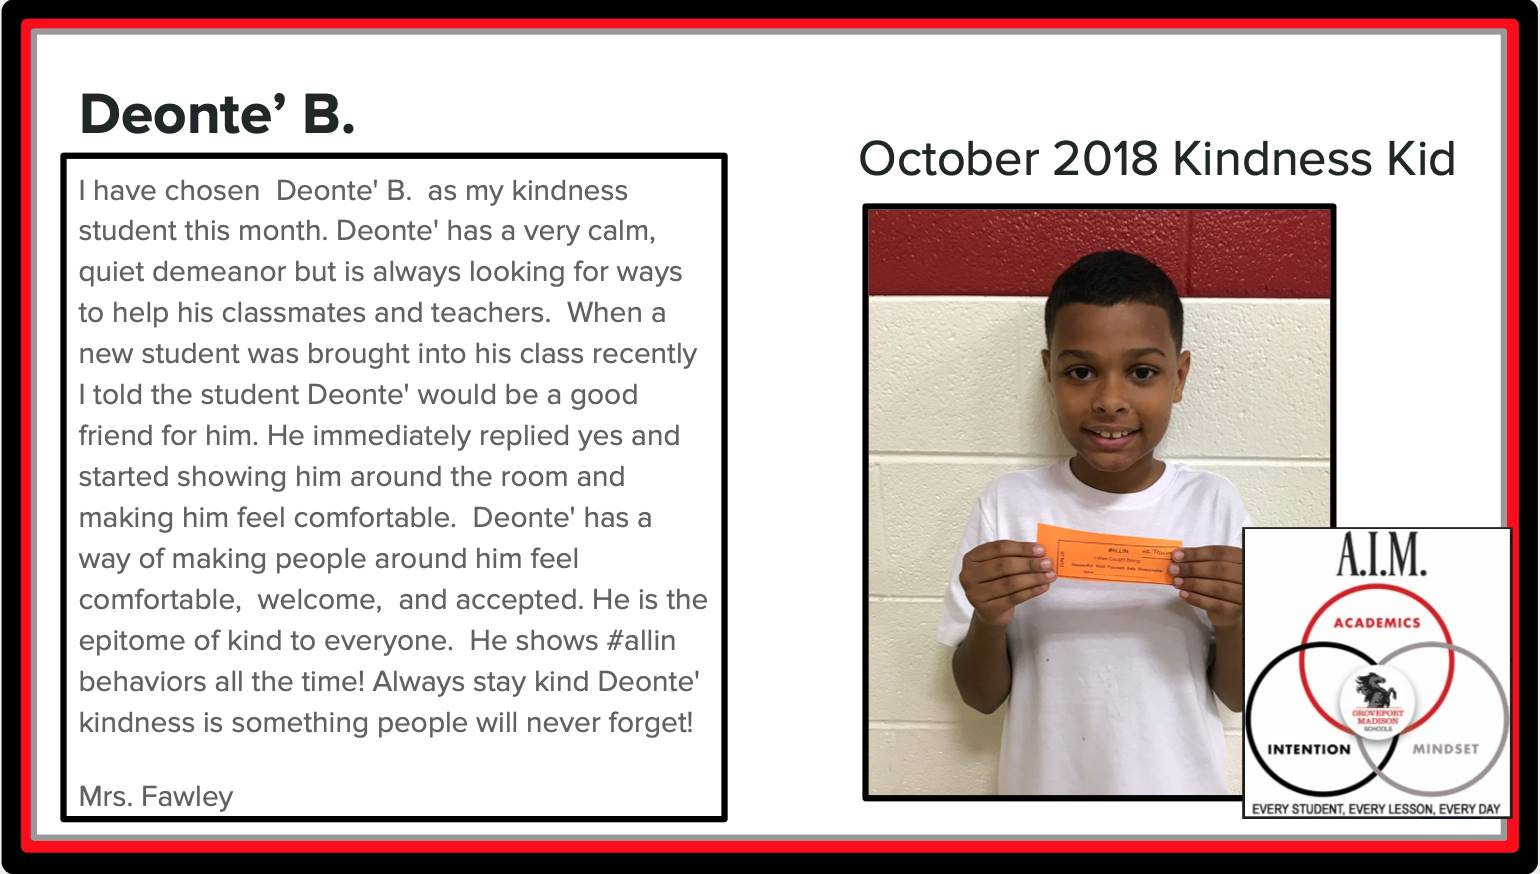 Kindness Kid Deonte'